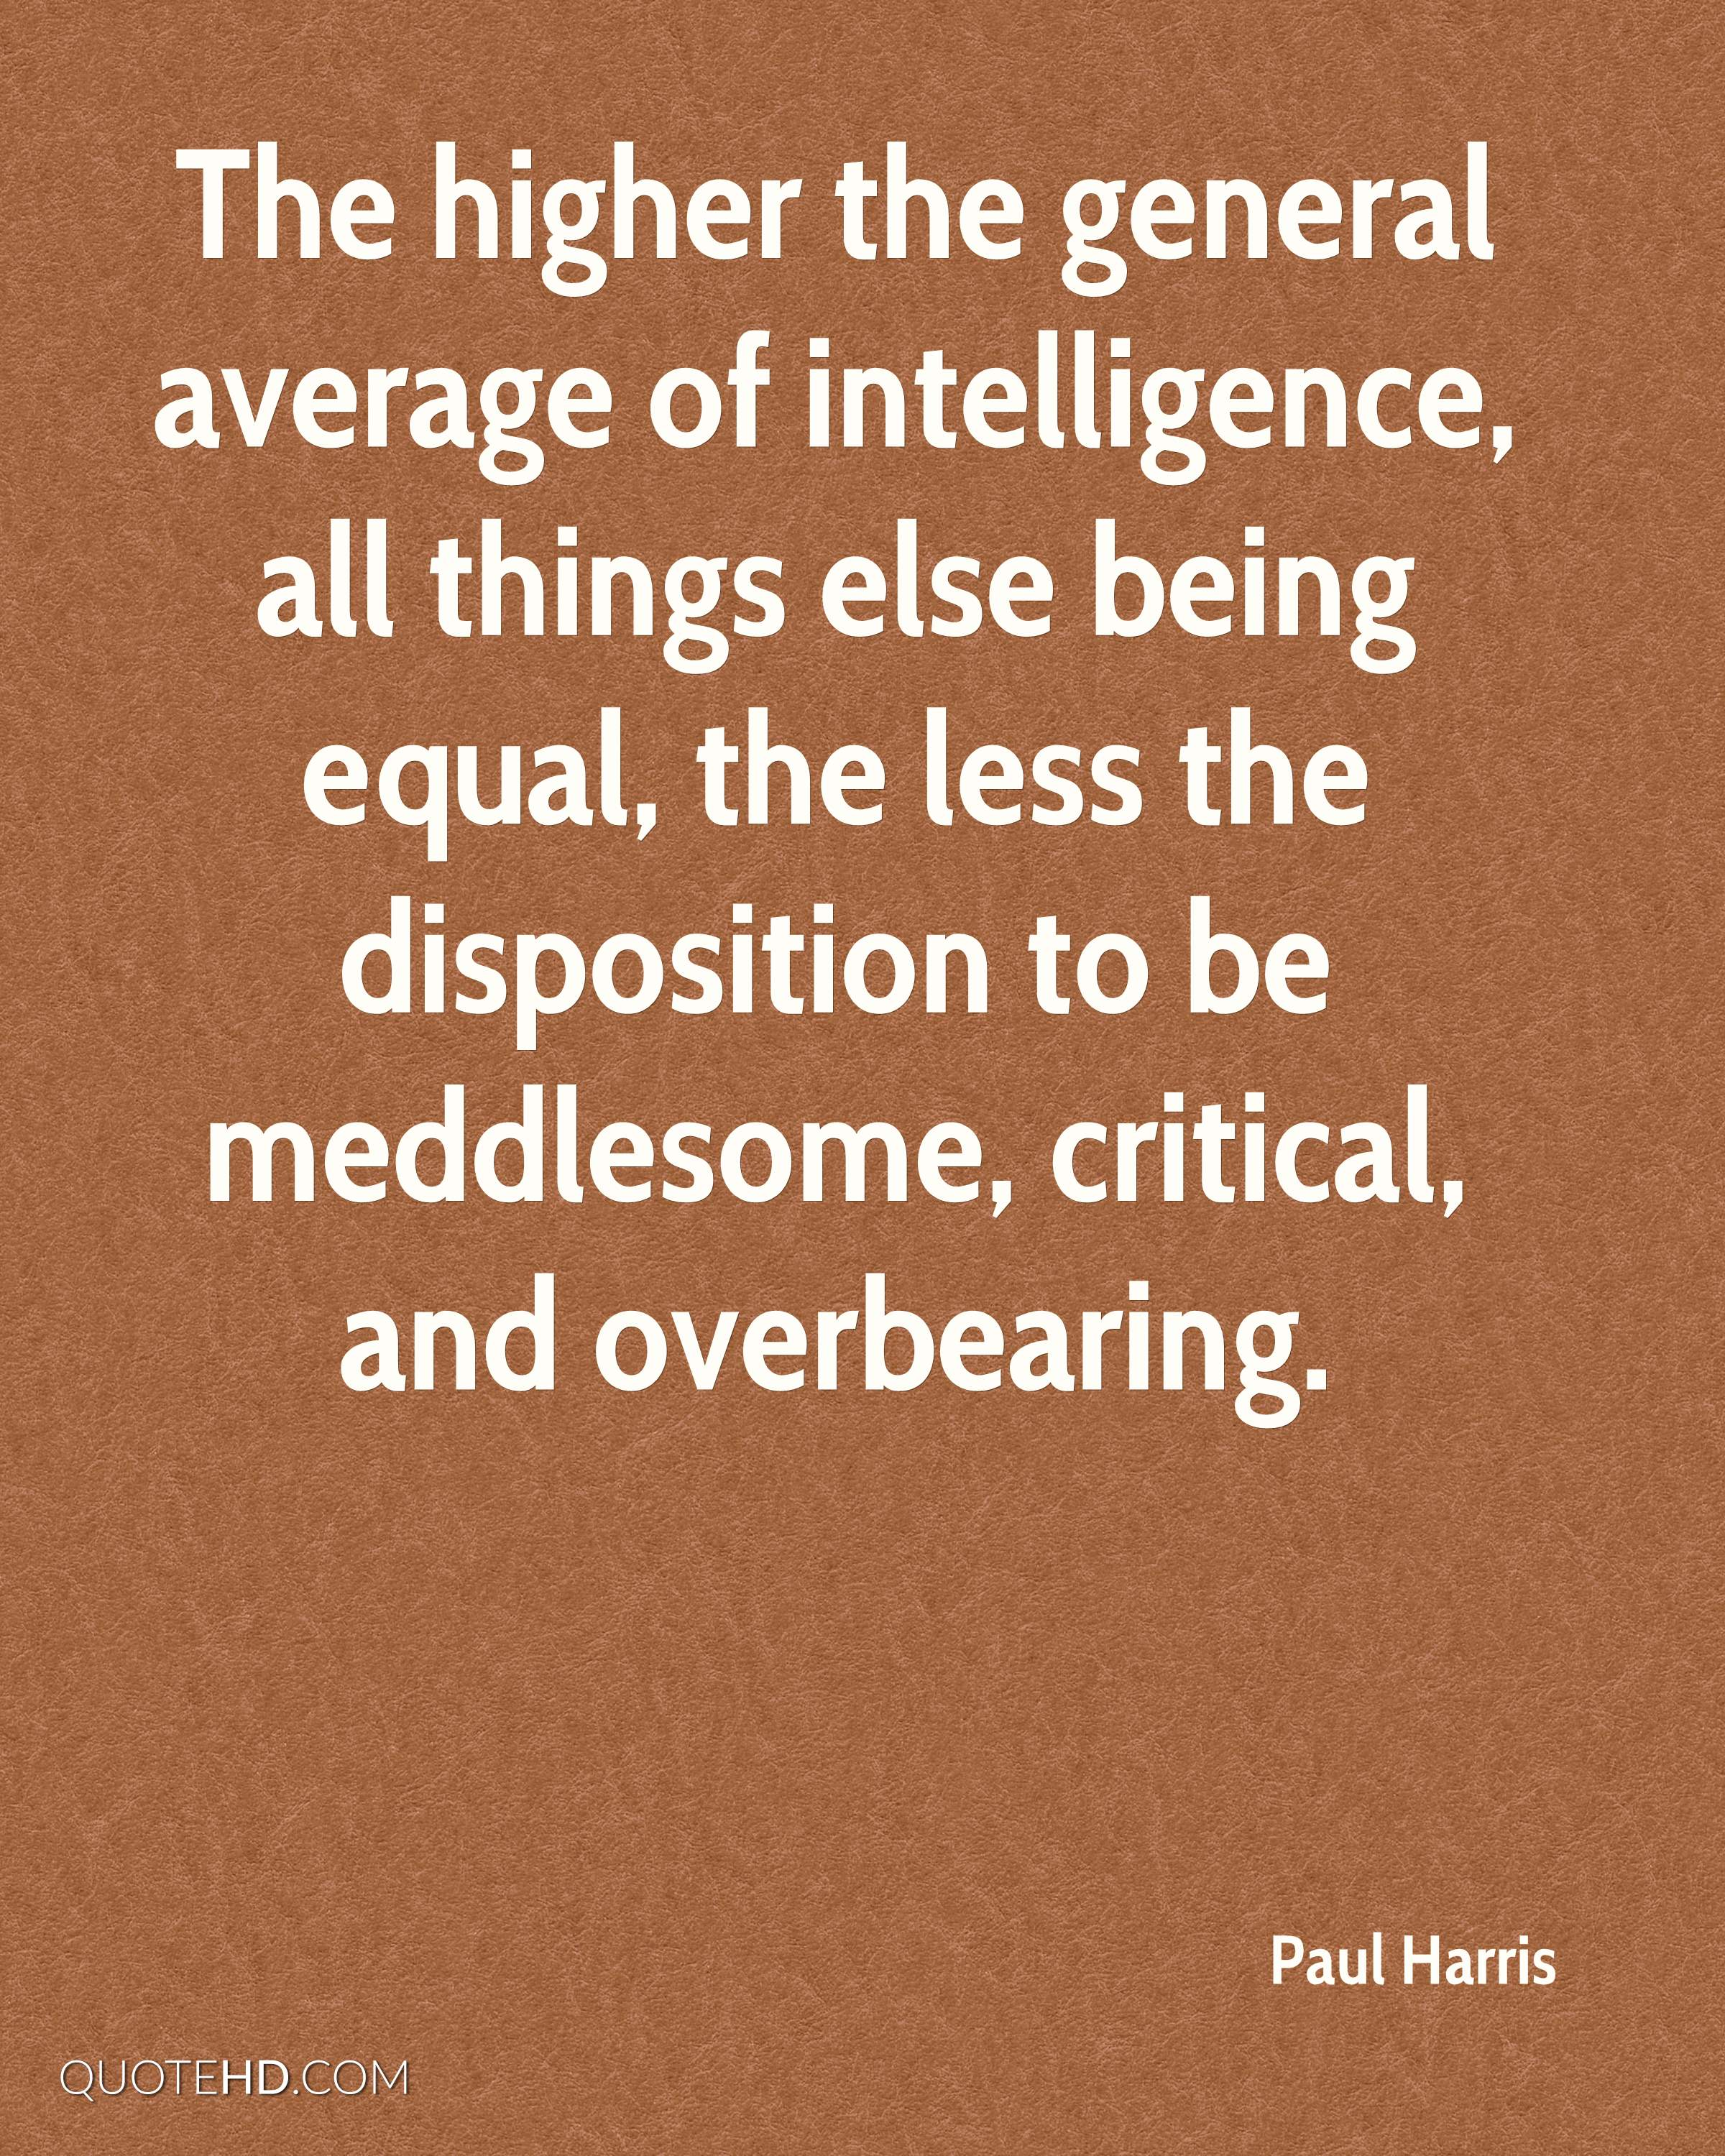 The General Quote New Paul Harris Intelligence Quotes  Quotehd